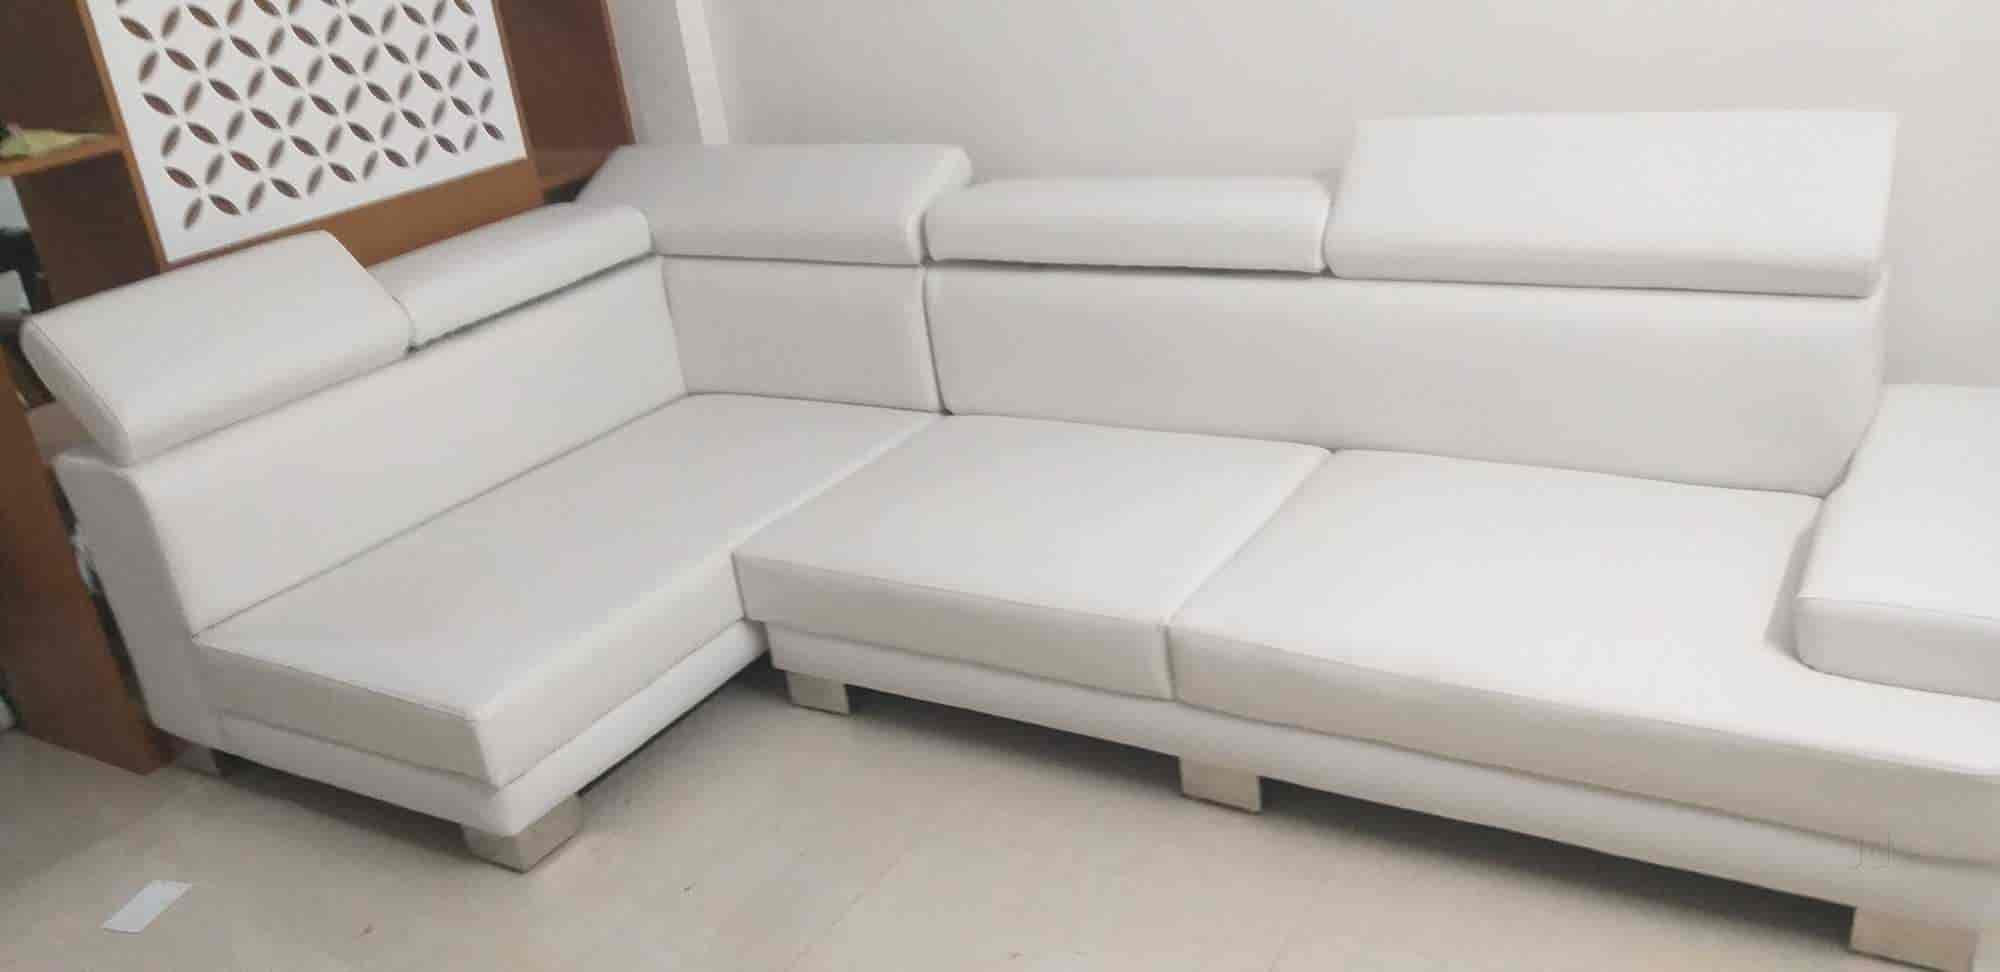 Sofa Service Sofa Service Centre Kundalahalli Sofa Set Repair Services In